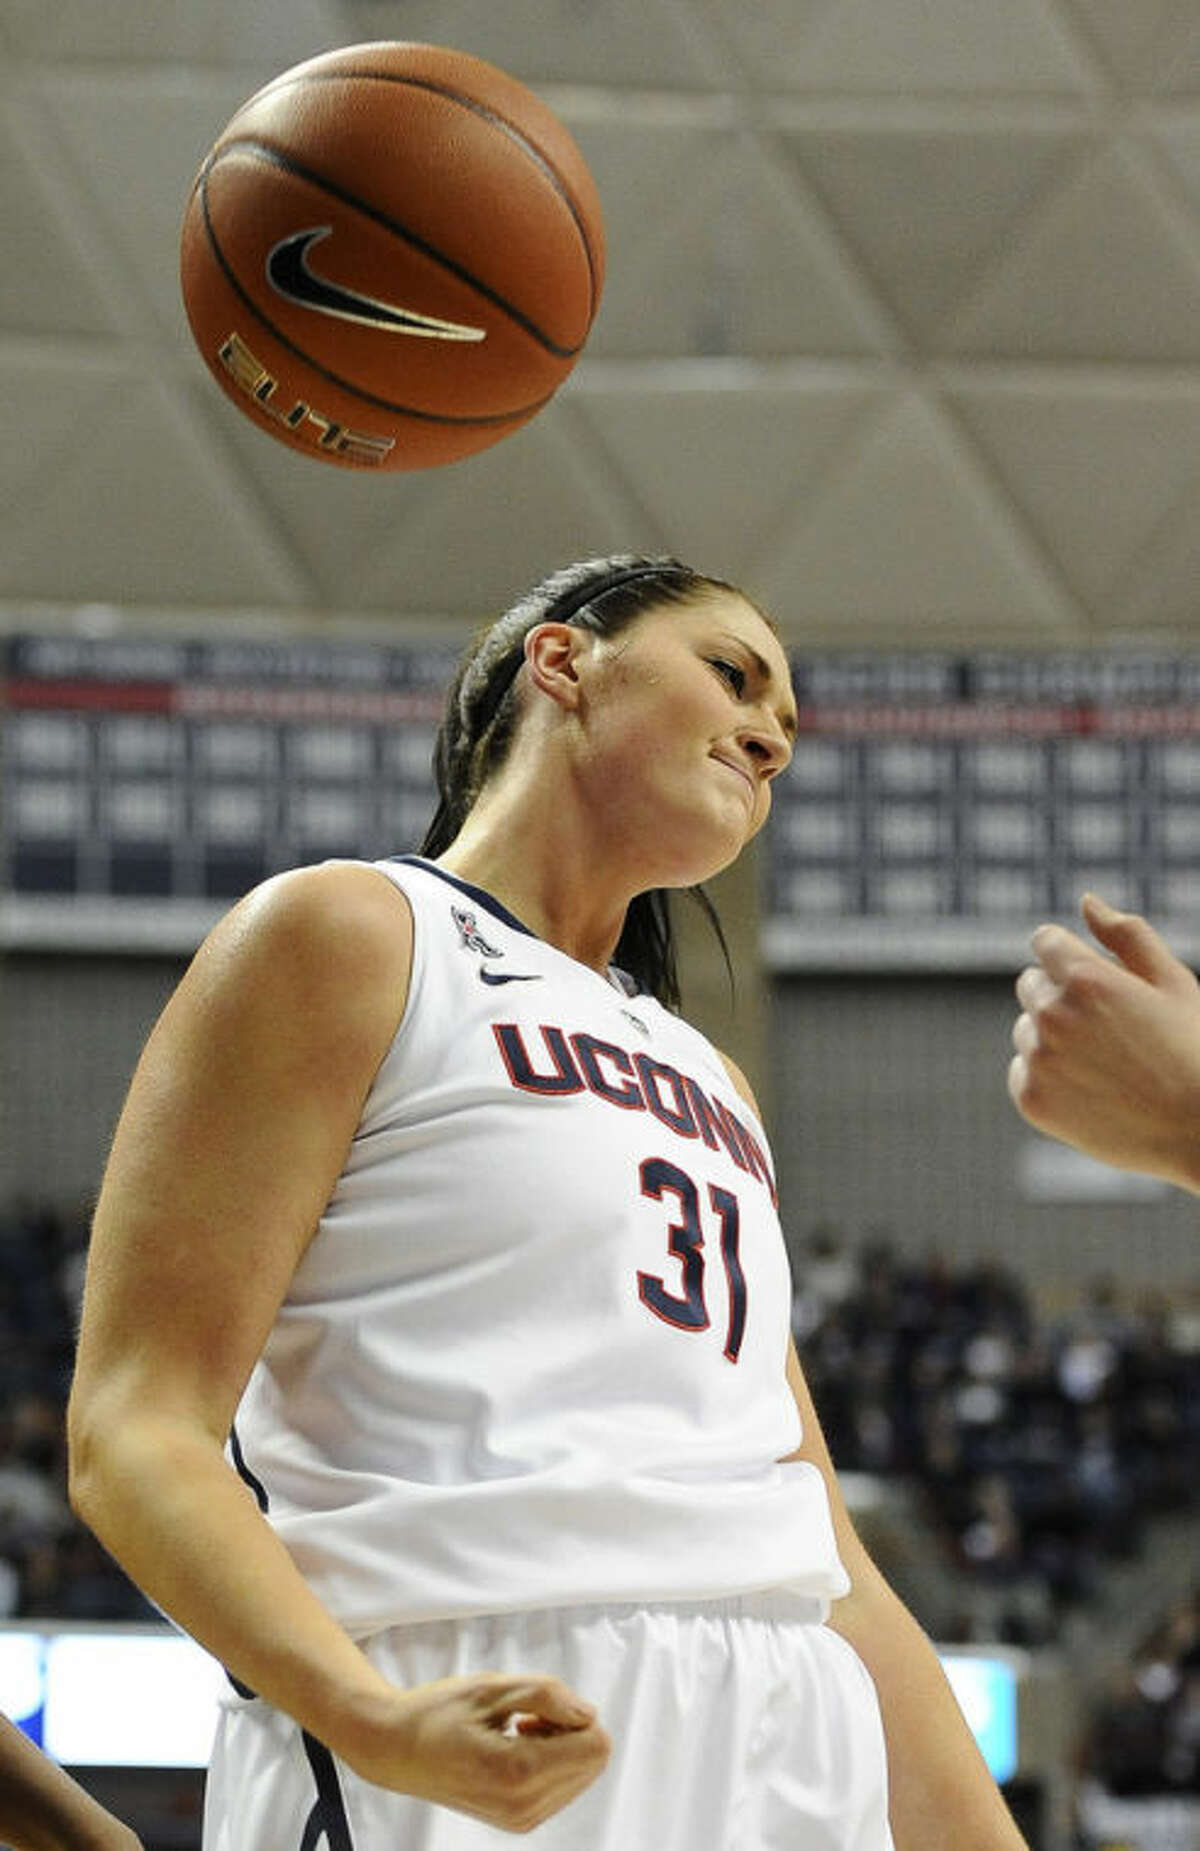 Connecticut's Stefanie Dolson reacts after being fouled during the first half of an NCAA college basketball game against Cincinnati, Sunday, Dec. 29, 2013, in Storrs, Conn. (AP Photo/Jessica Hill)